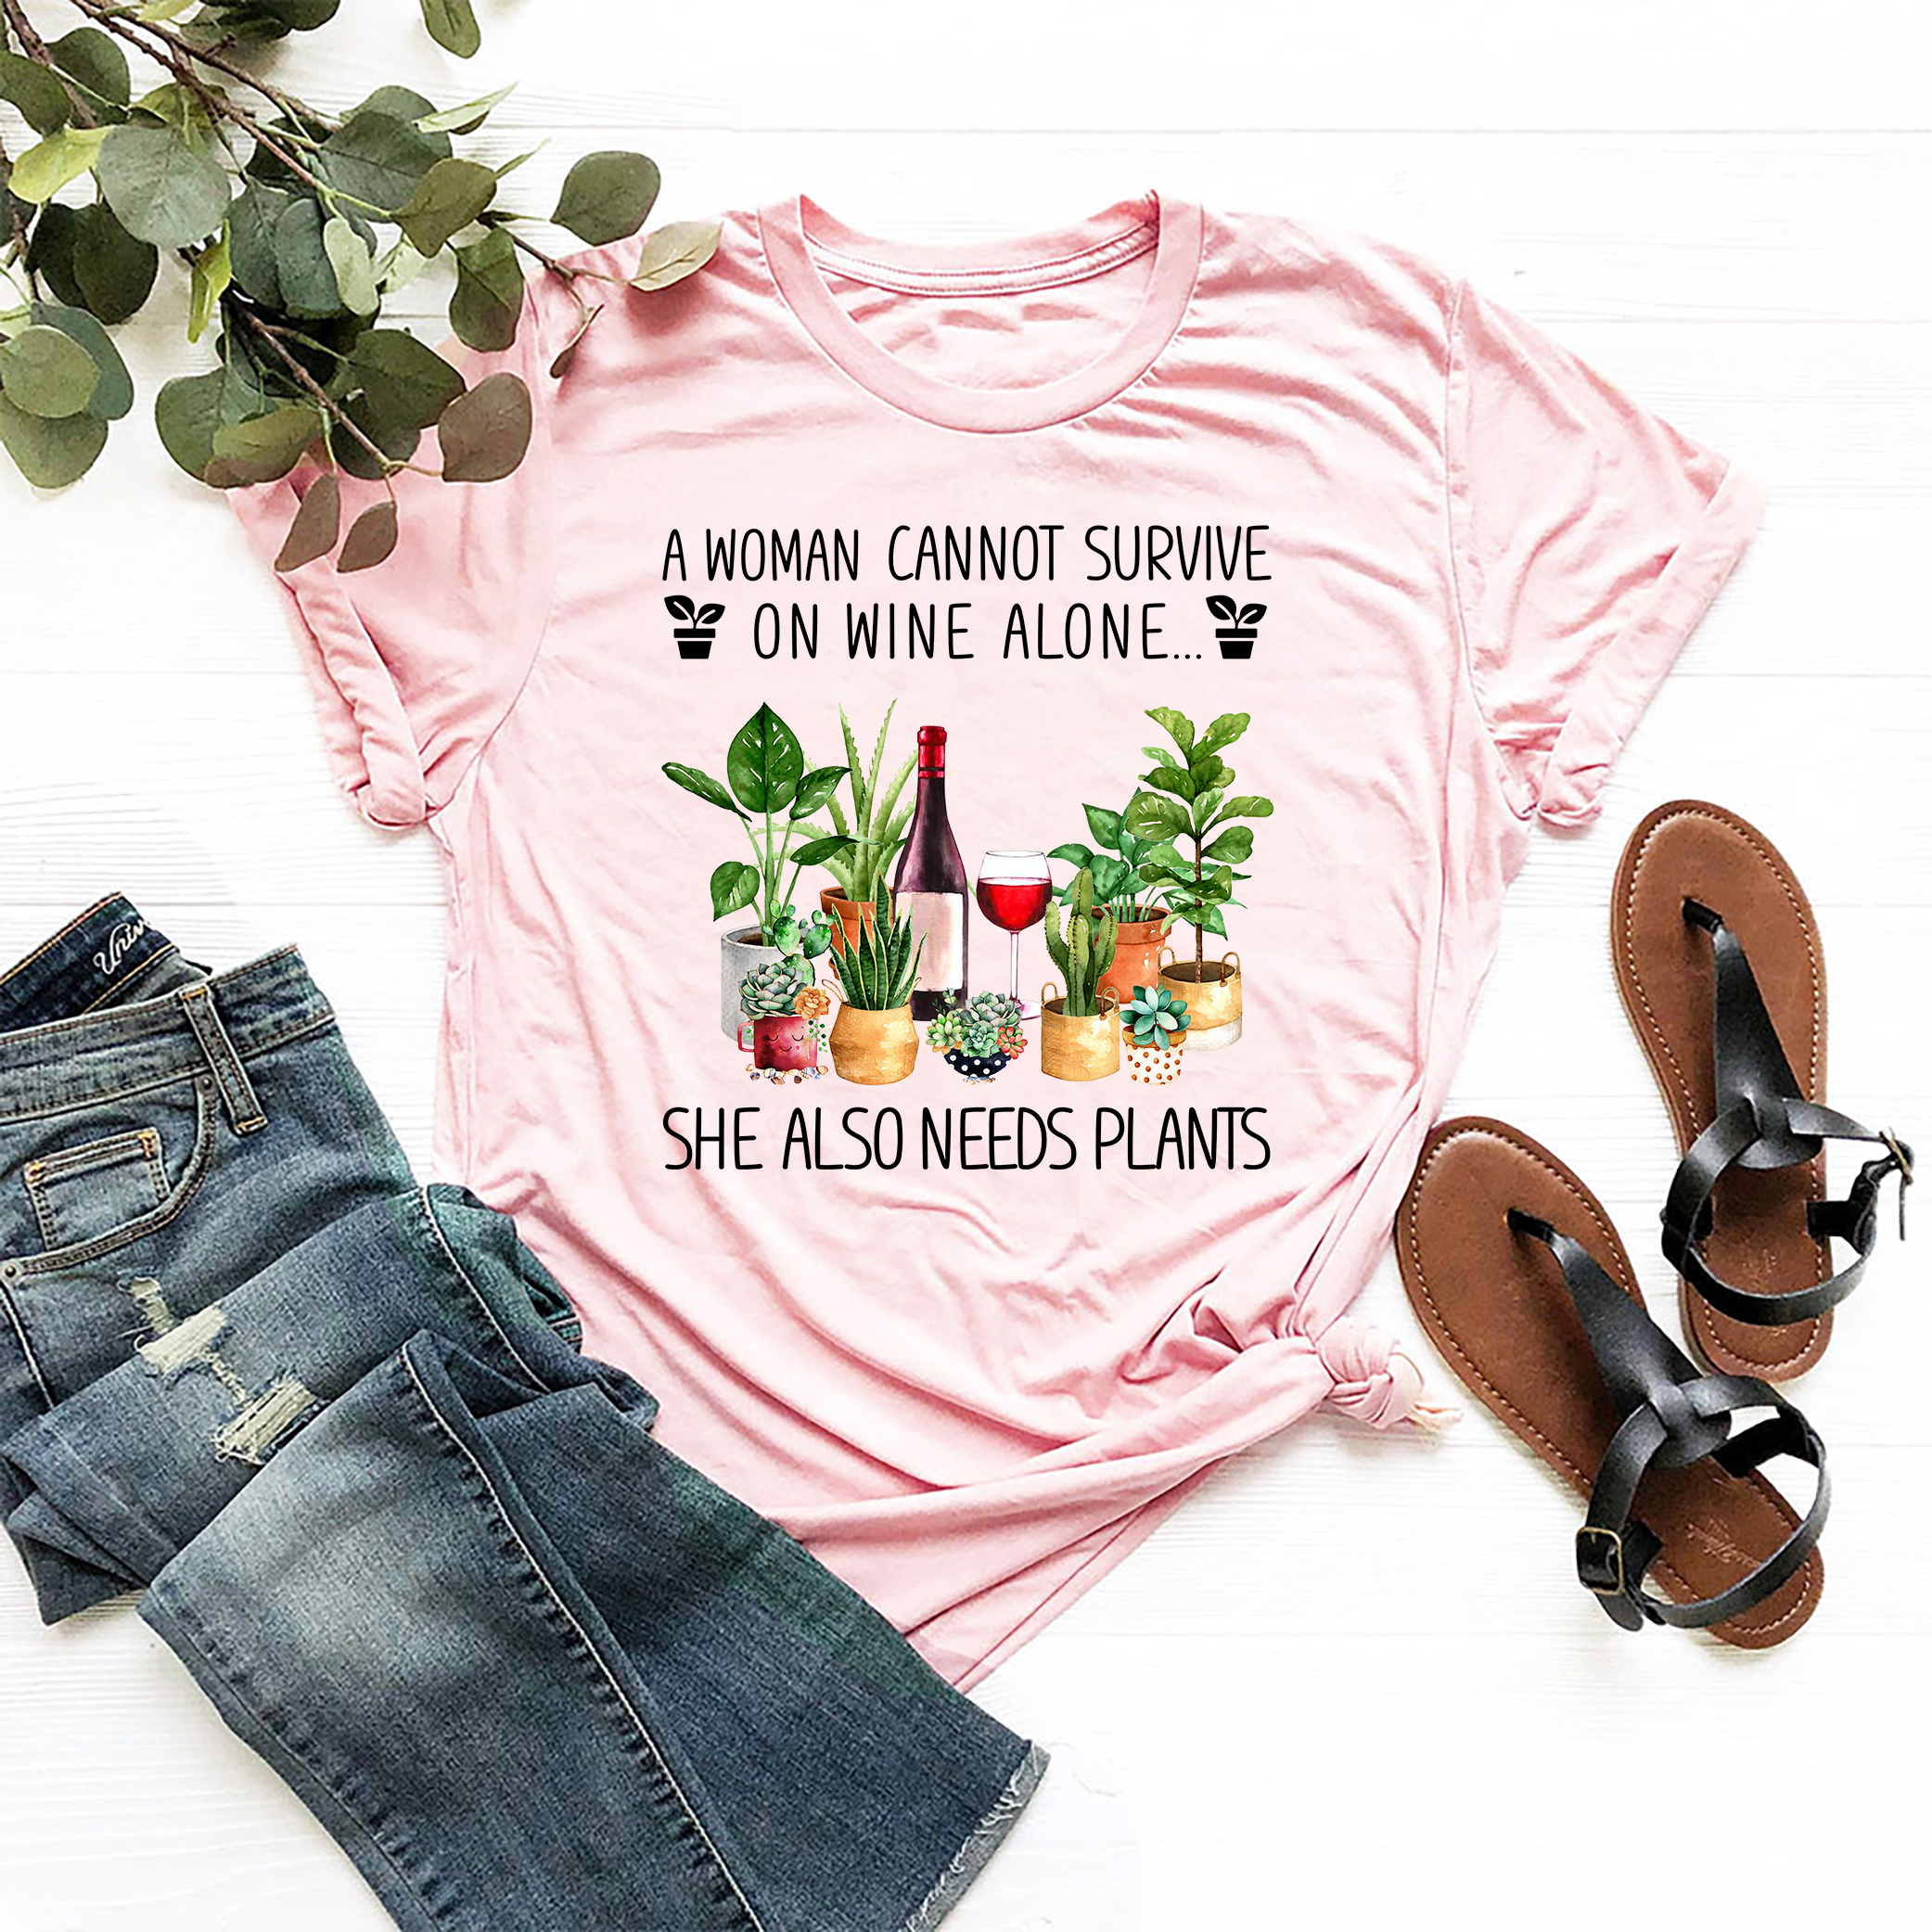 Garden Shirt Women Cannot Survive Wine Alone Also Need Plants